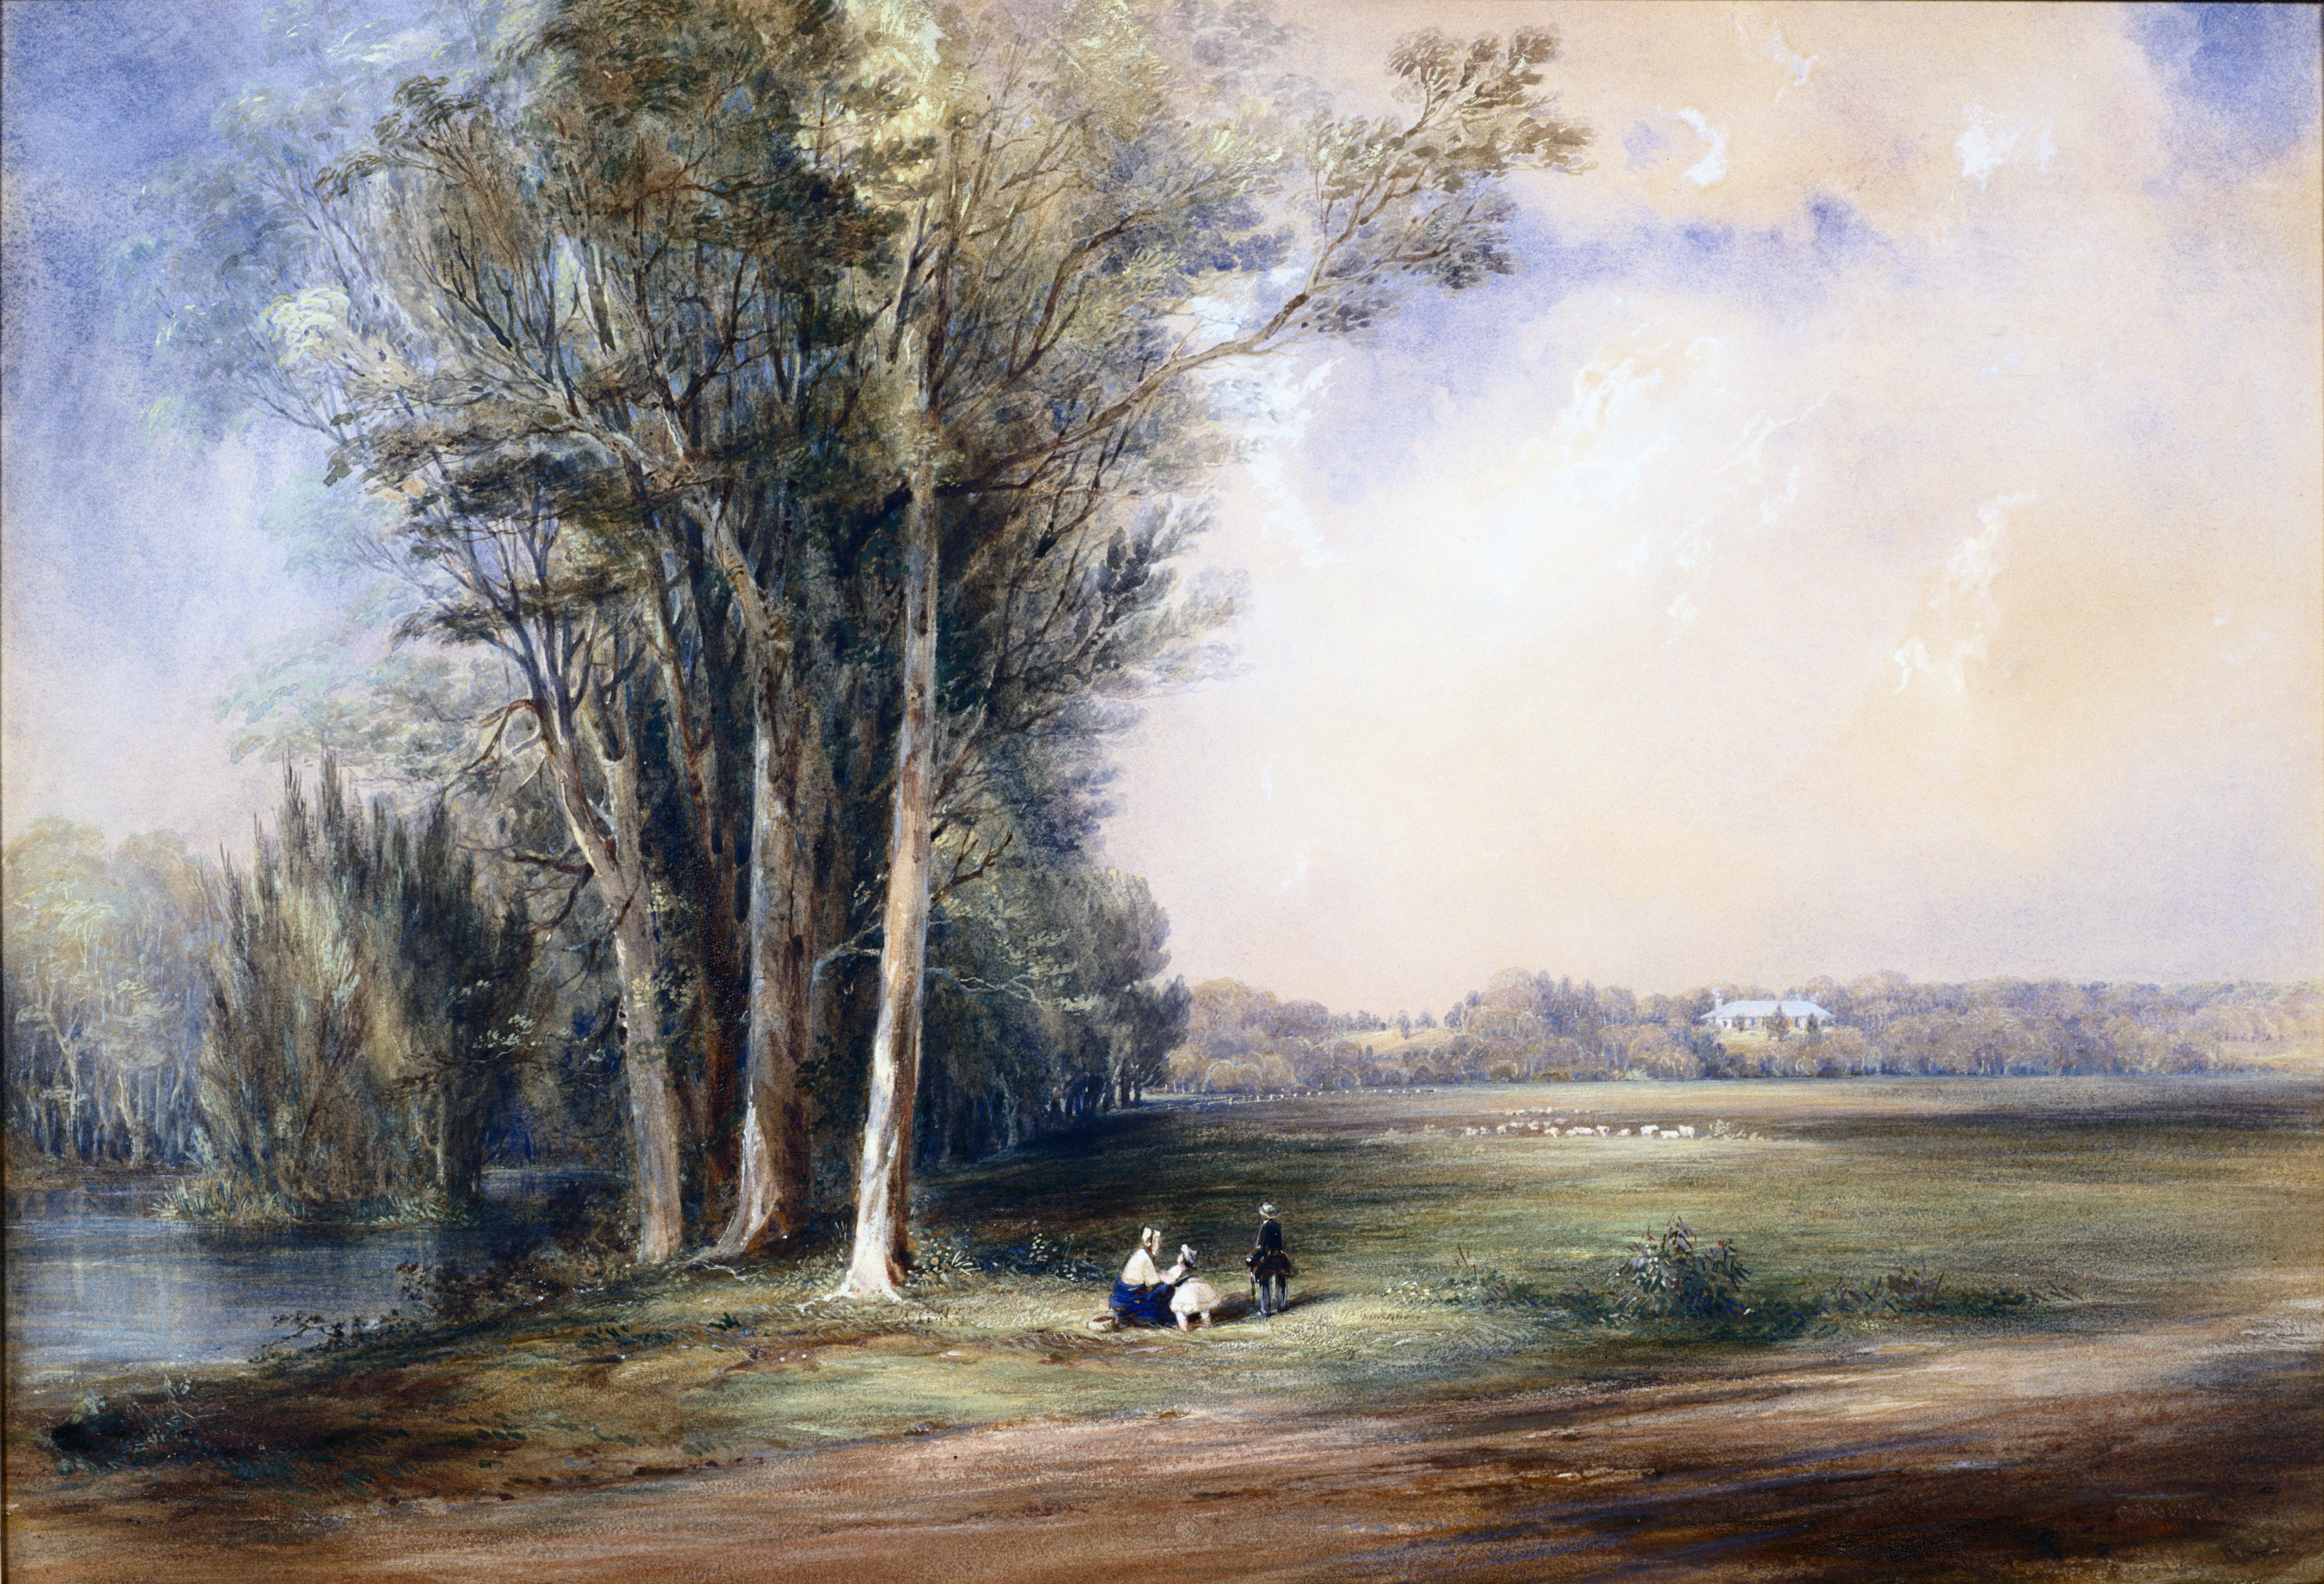 Landscape with tall trees to one side and open area to other with figures in middle ground.